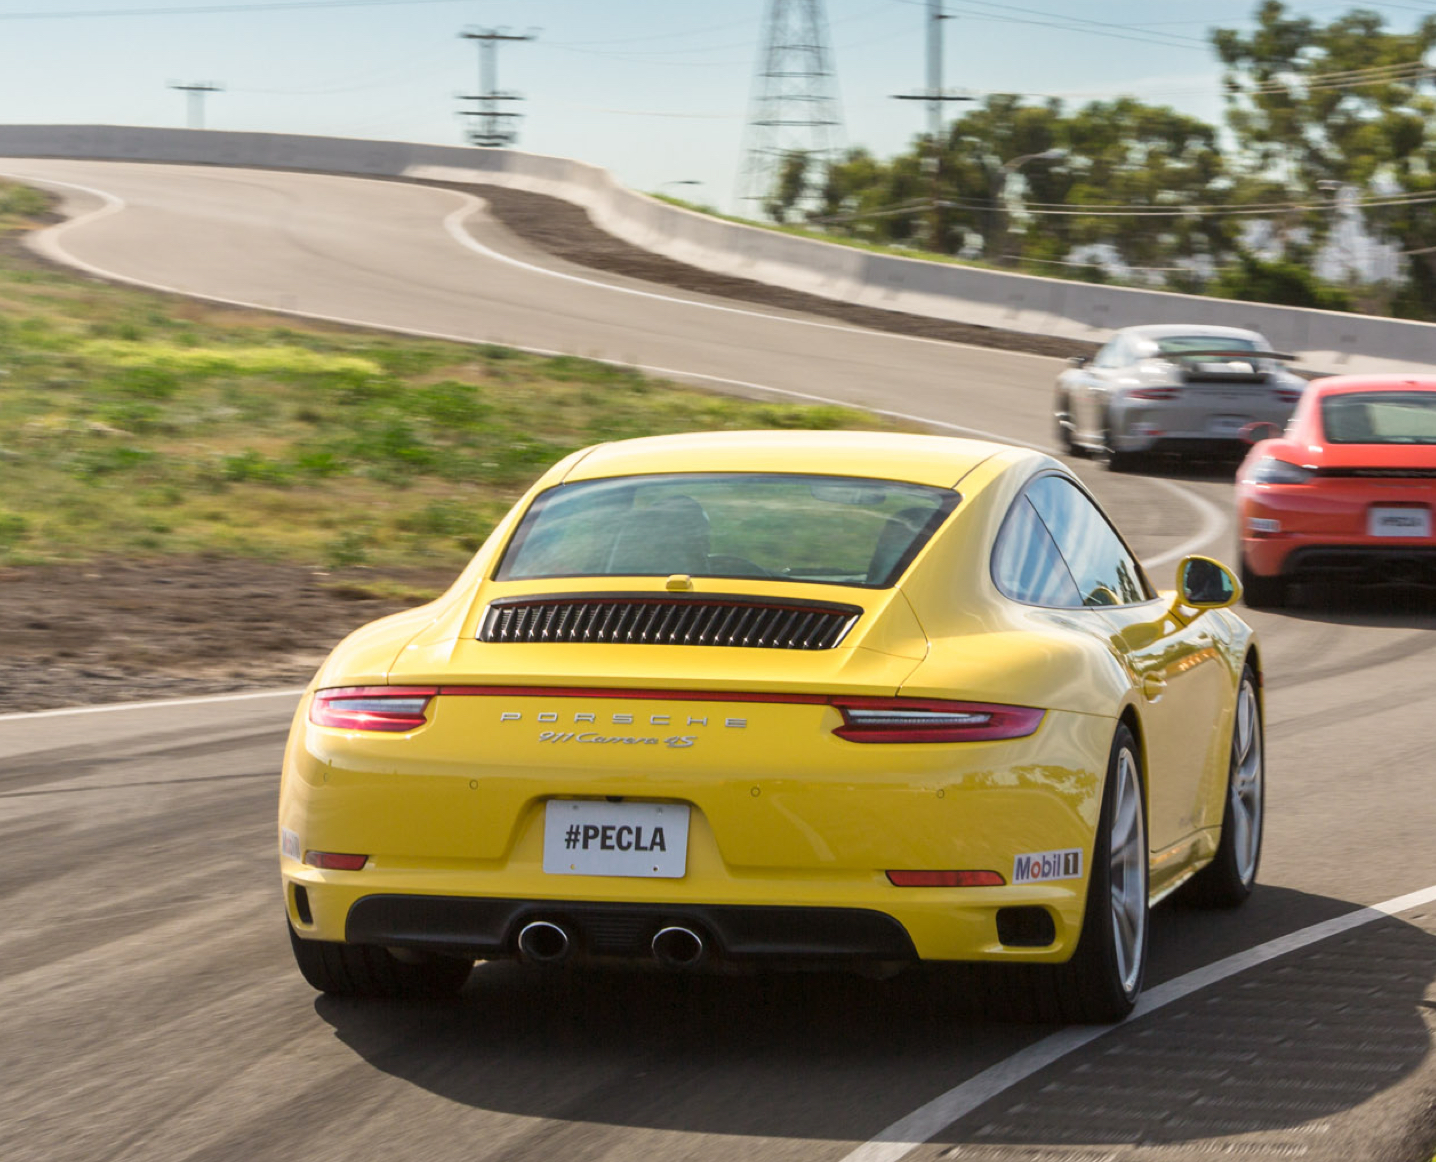 Yellow Carrera on the 2 verse 4 driving experience